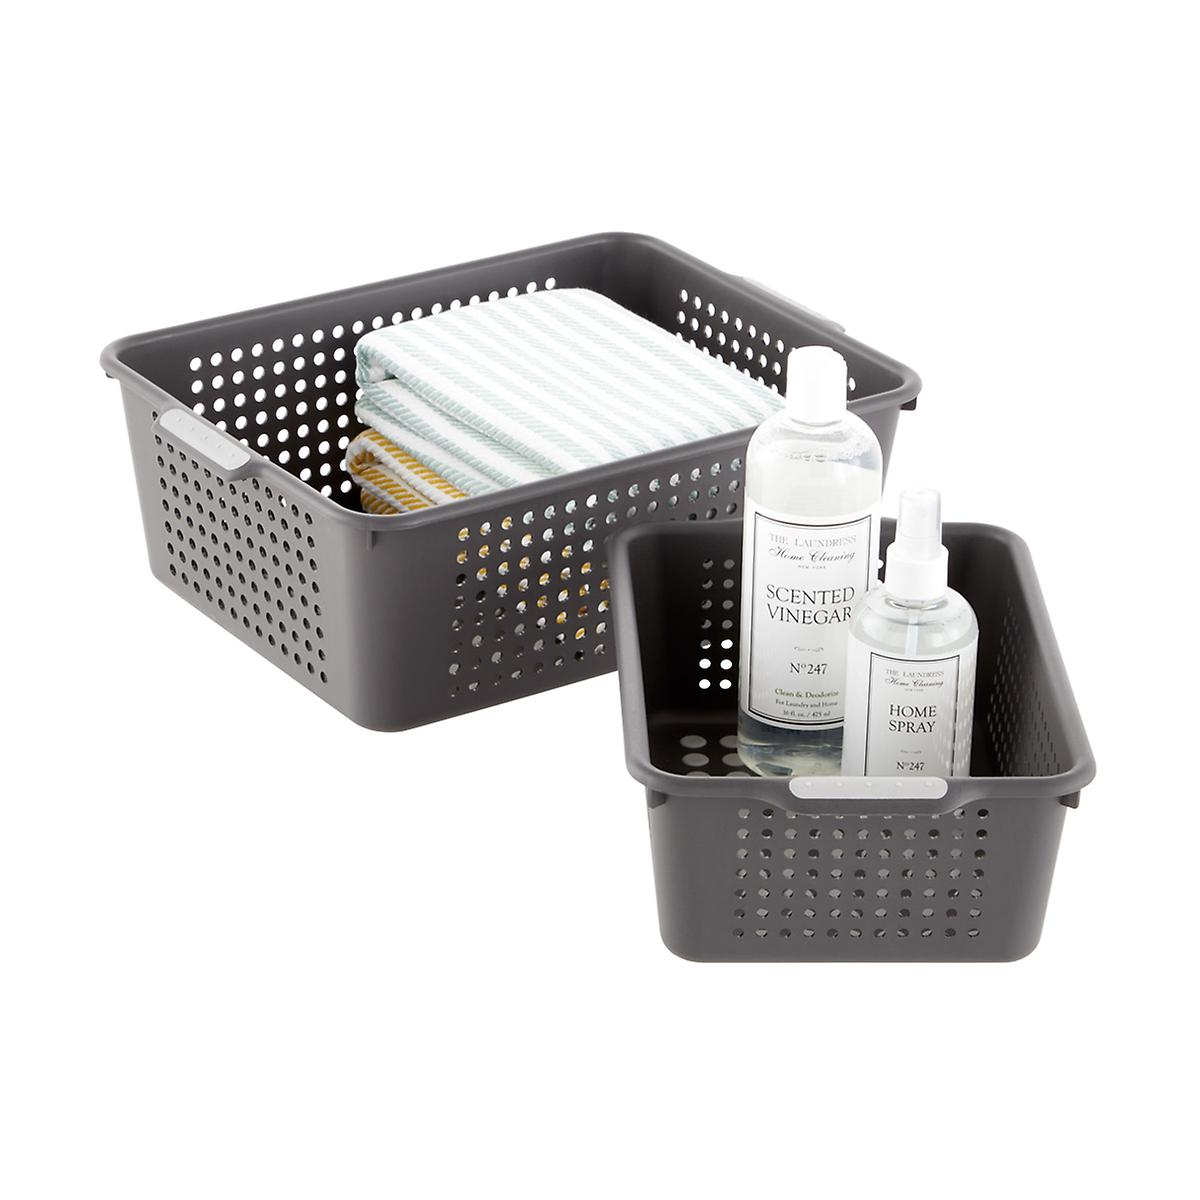 madesmart Charcoal Storage Baskets